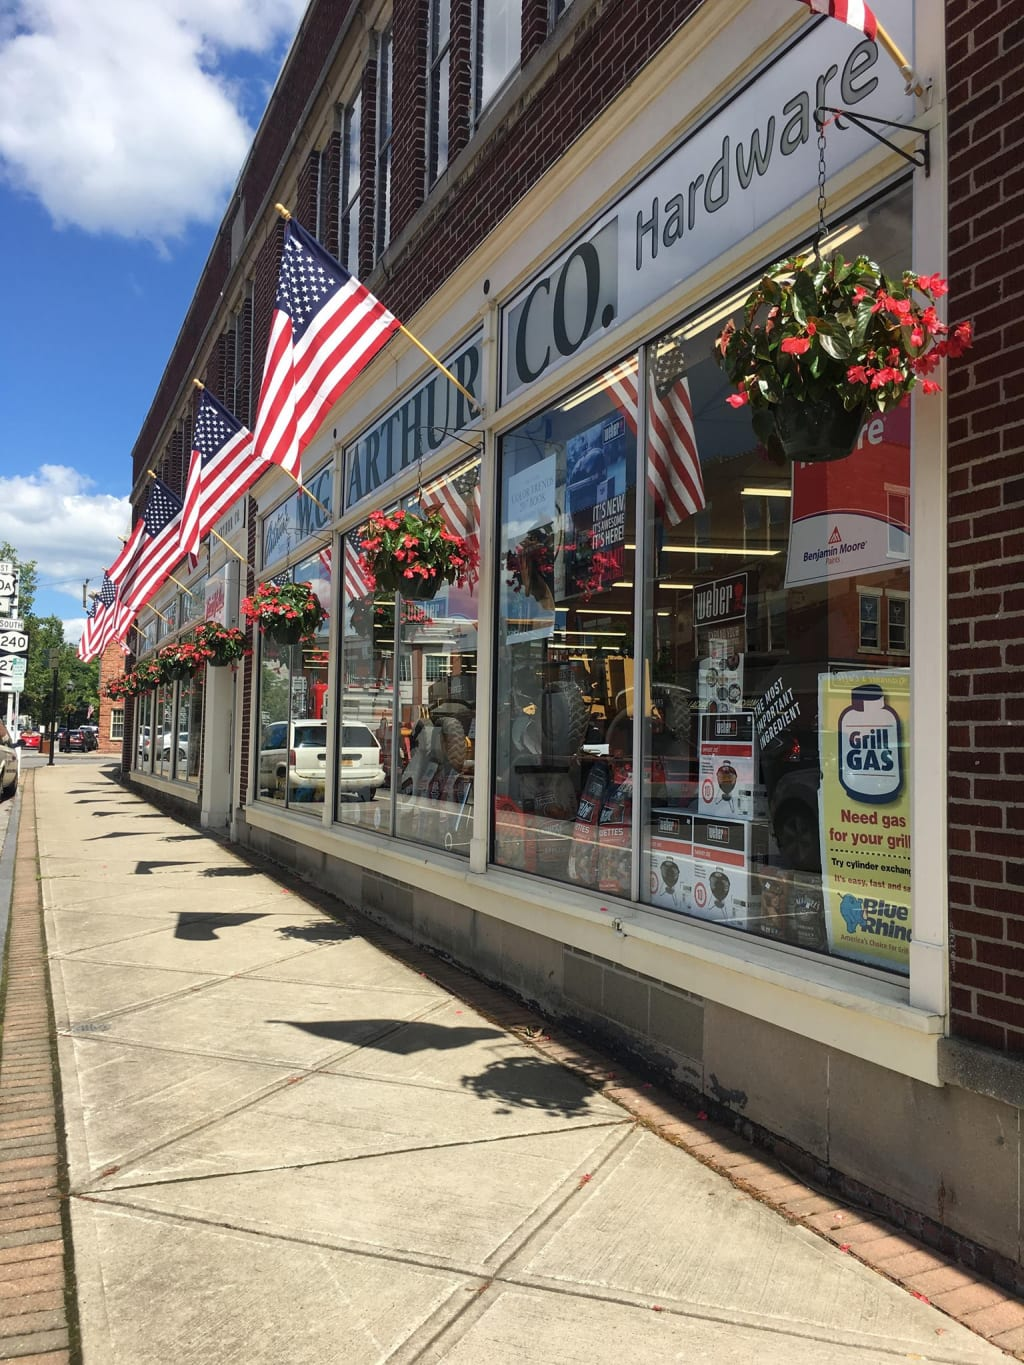 Arthur's Hardware: The Quintessential Hardware Store